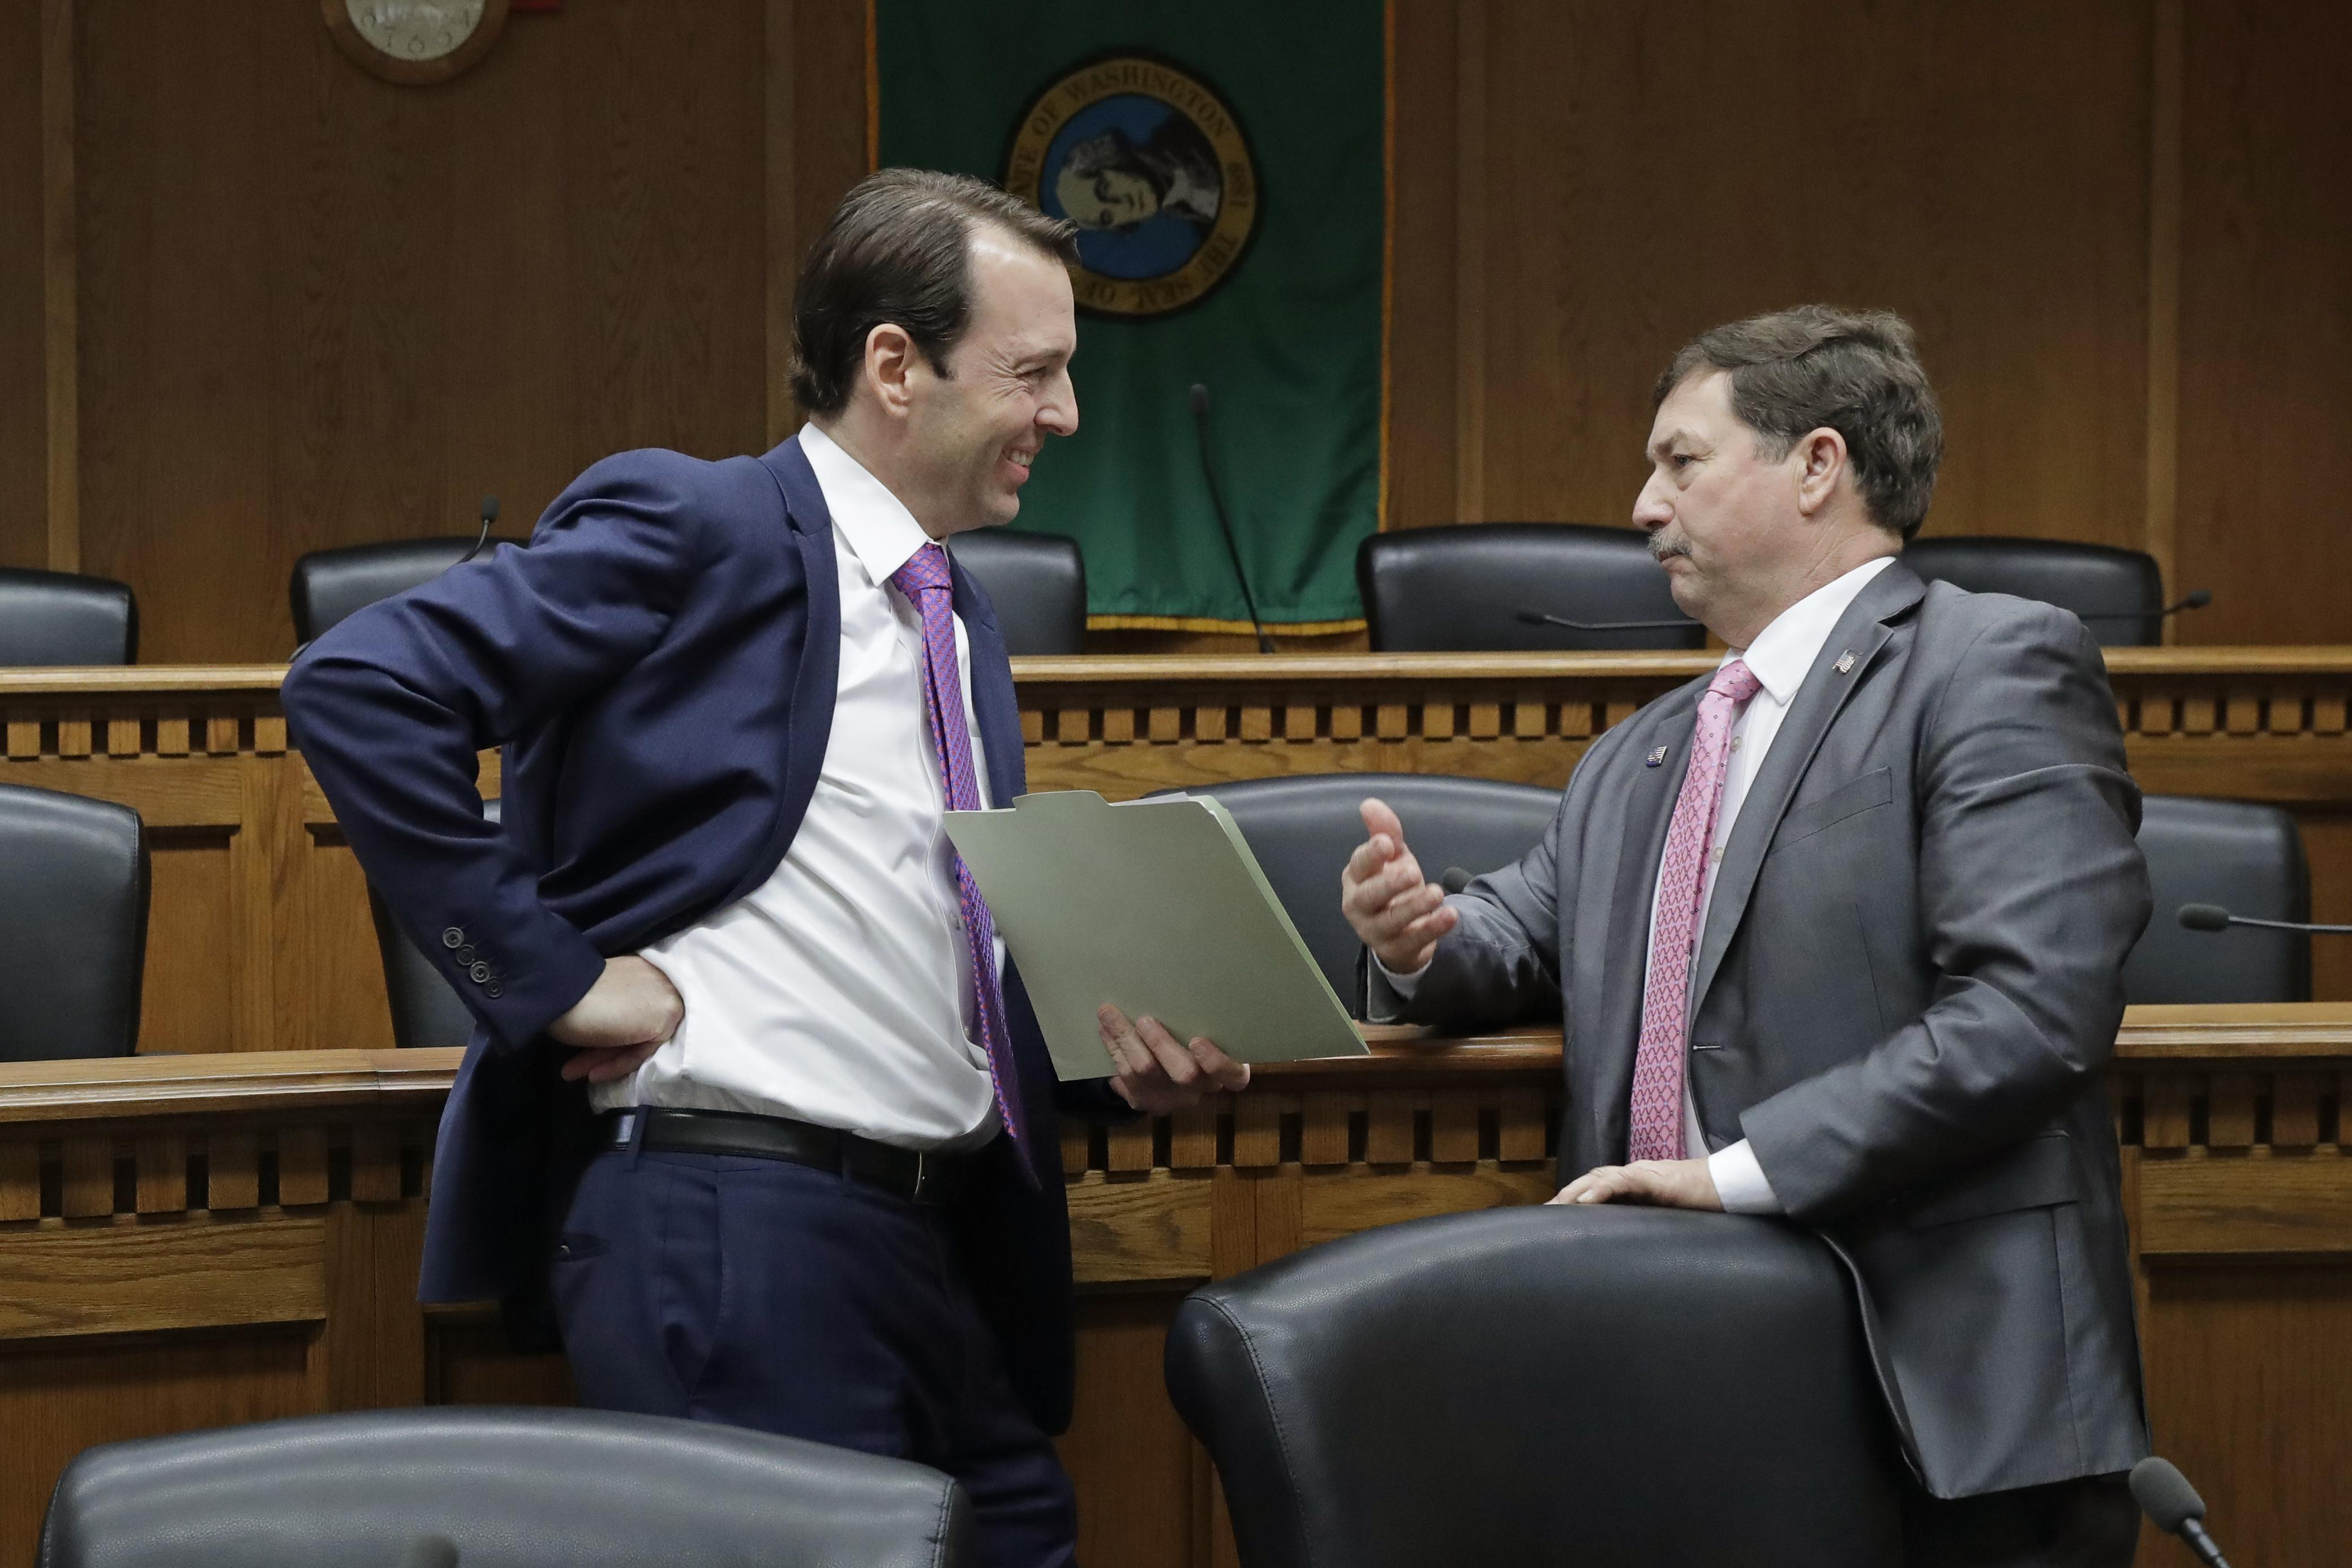 Senate Majority Leader Andy Billig, D-Spokane, left, talks with Senate Minority Leader Mark Schoesler, R-Ritzville, right, after they took part in a legislative preview on Thursday, Jan. 9, 2020 in Olympia. Much of the legislature's work in the short session is likely to make incremental changes to laws, writes veteran political reporter Jim Camden